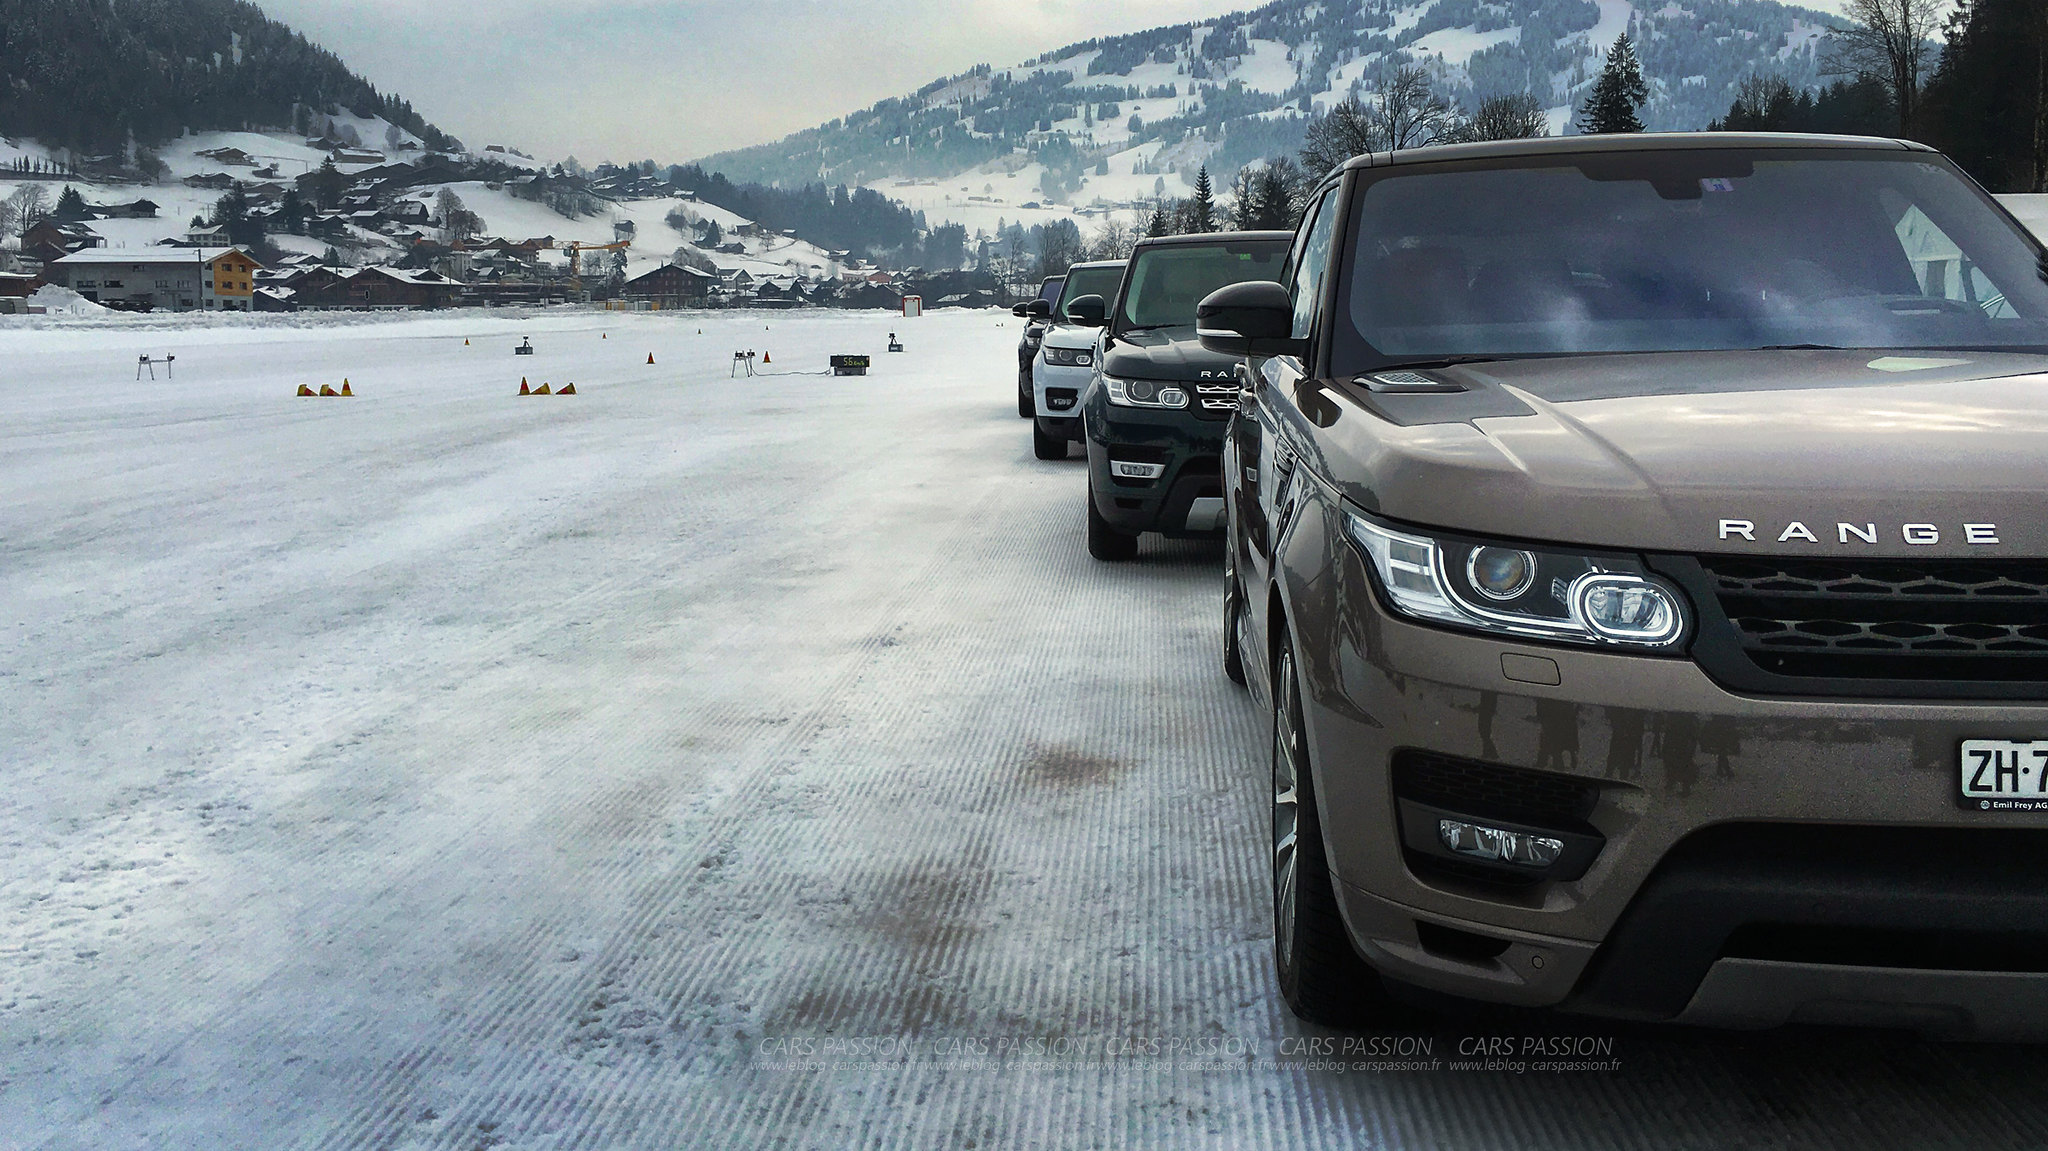 land-rover-ice-drivng-esperience-gstaad-(35)